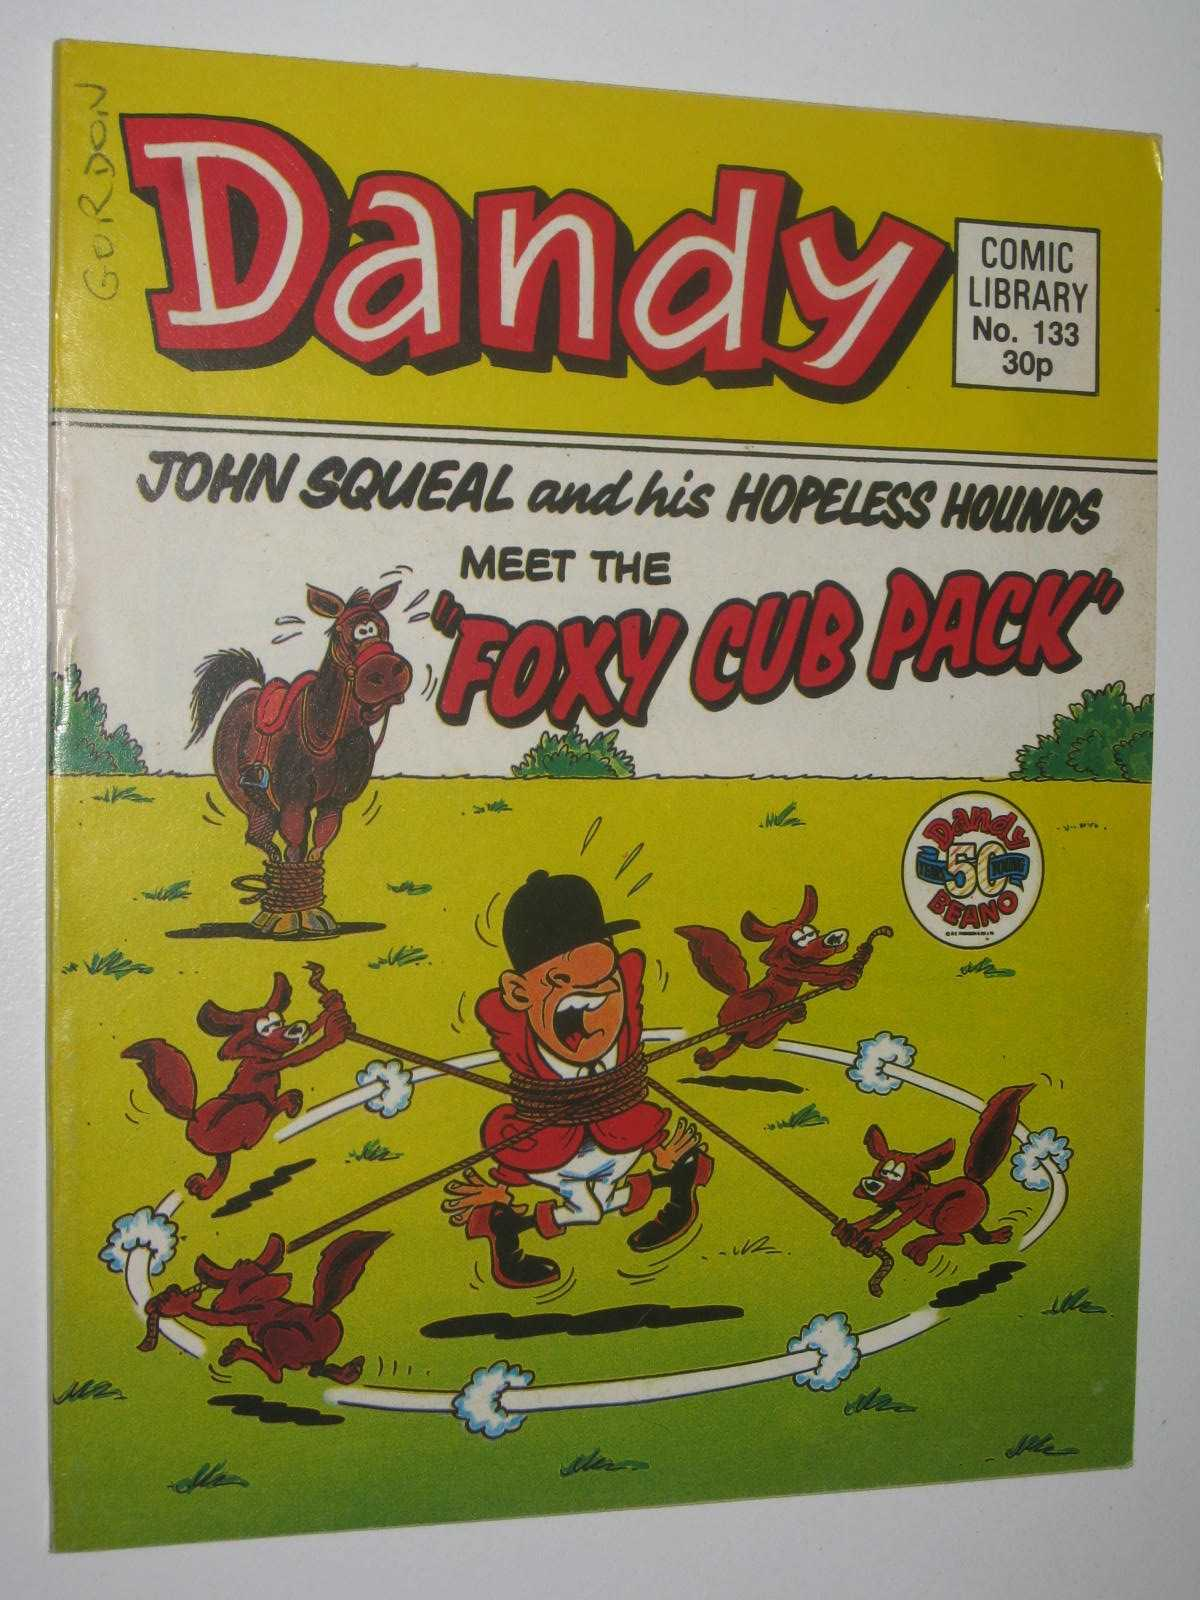 Image for JohnSqueal and Hopeless Hounds Meet the Foxy Cub Pack - Dandy Comic Library #133